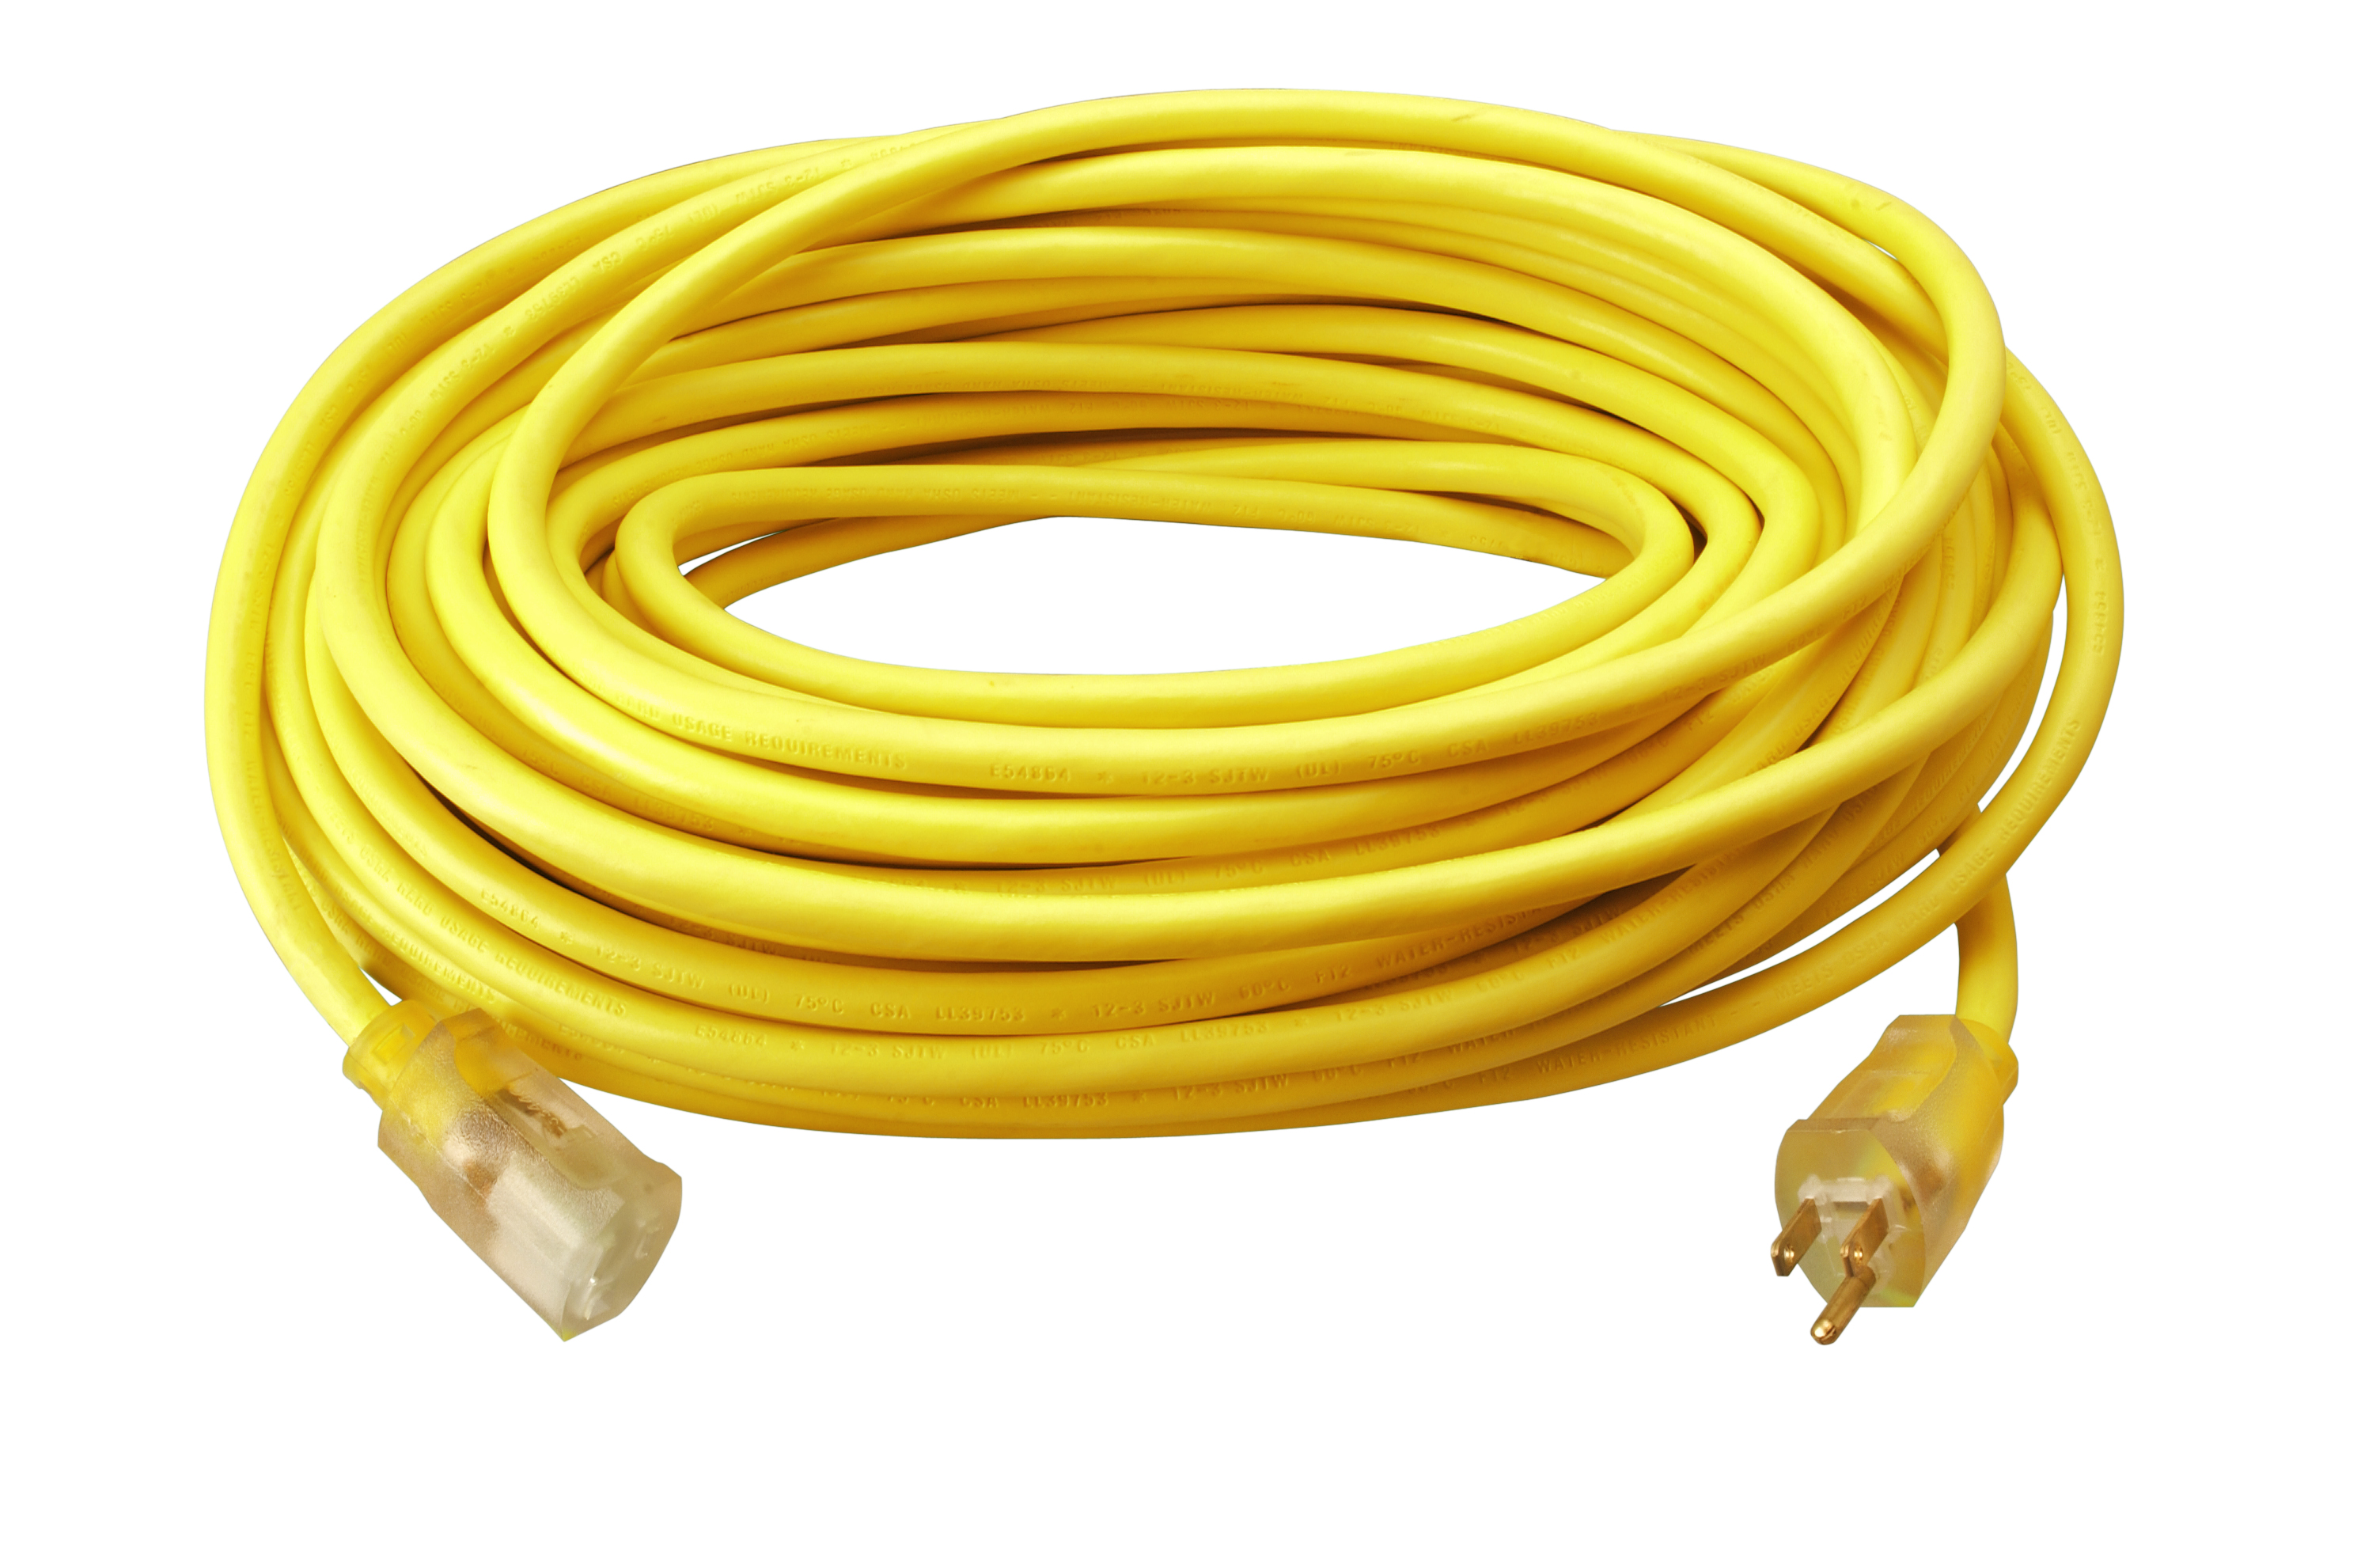 CLM 02589SW0002 12/3 100SJTW CORD YELLOW W/LITED END